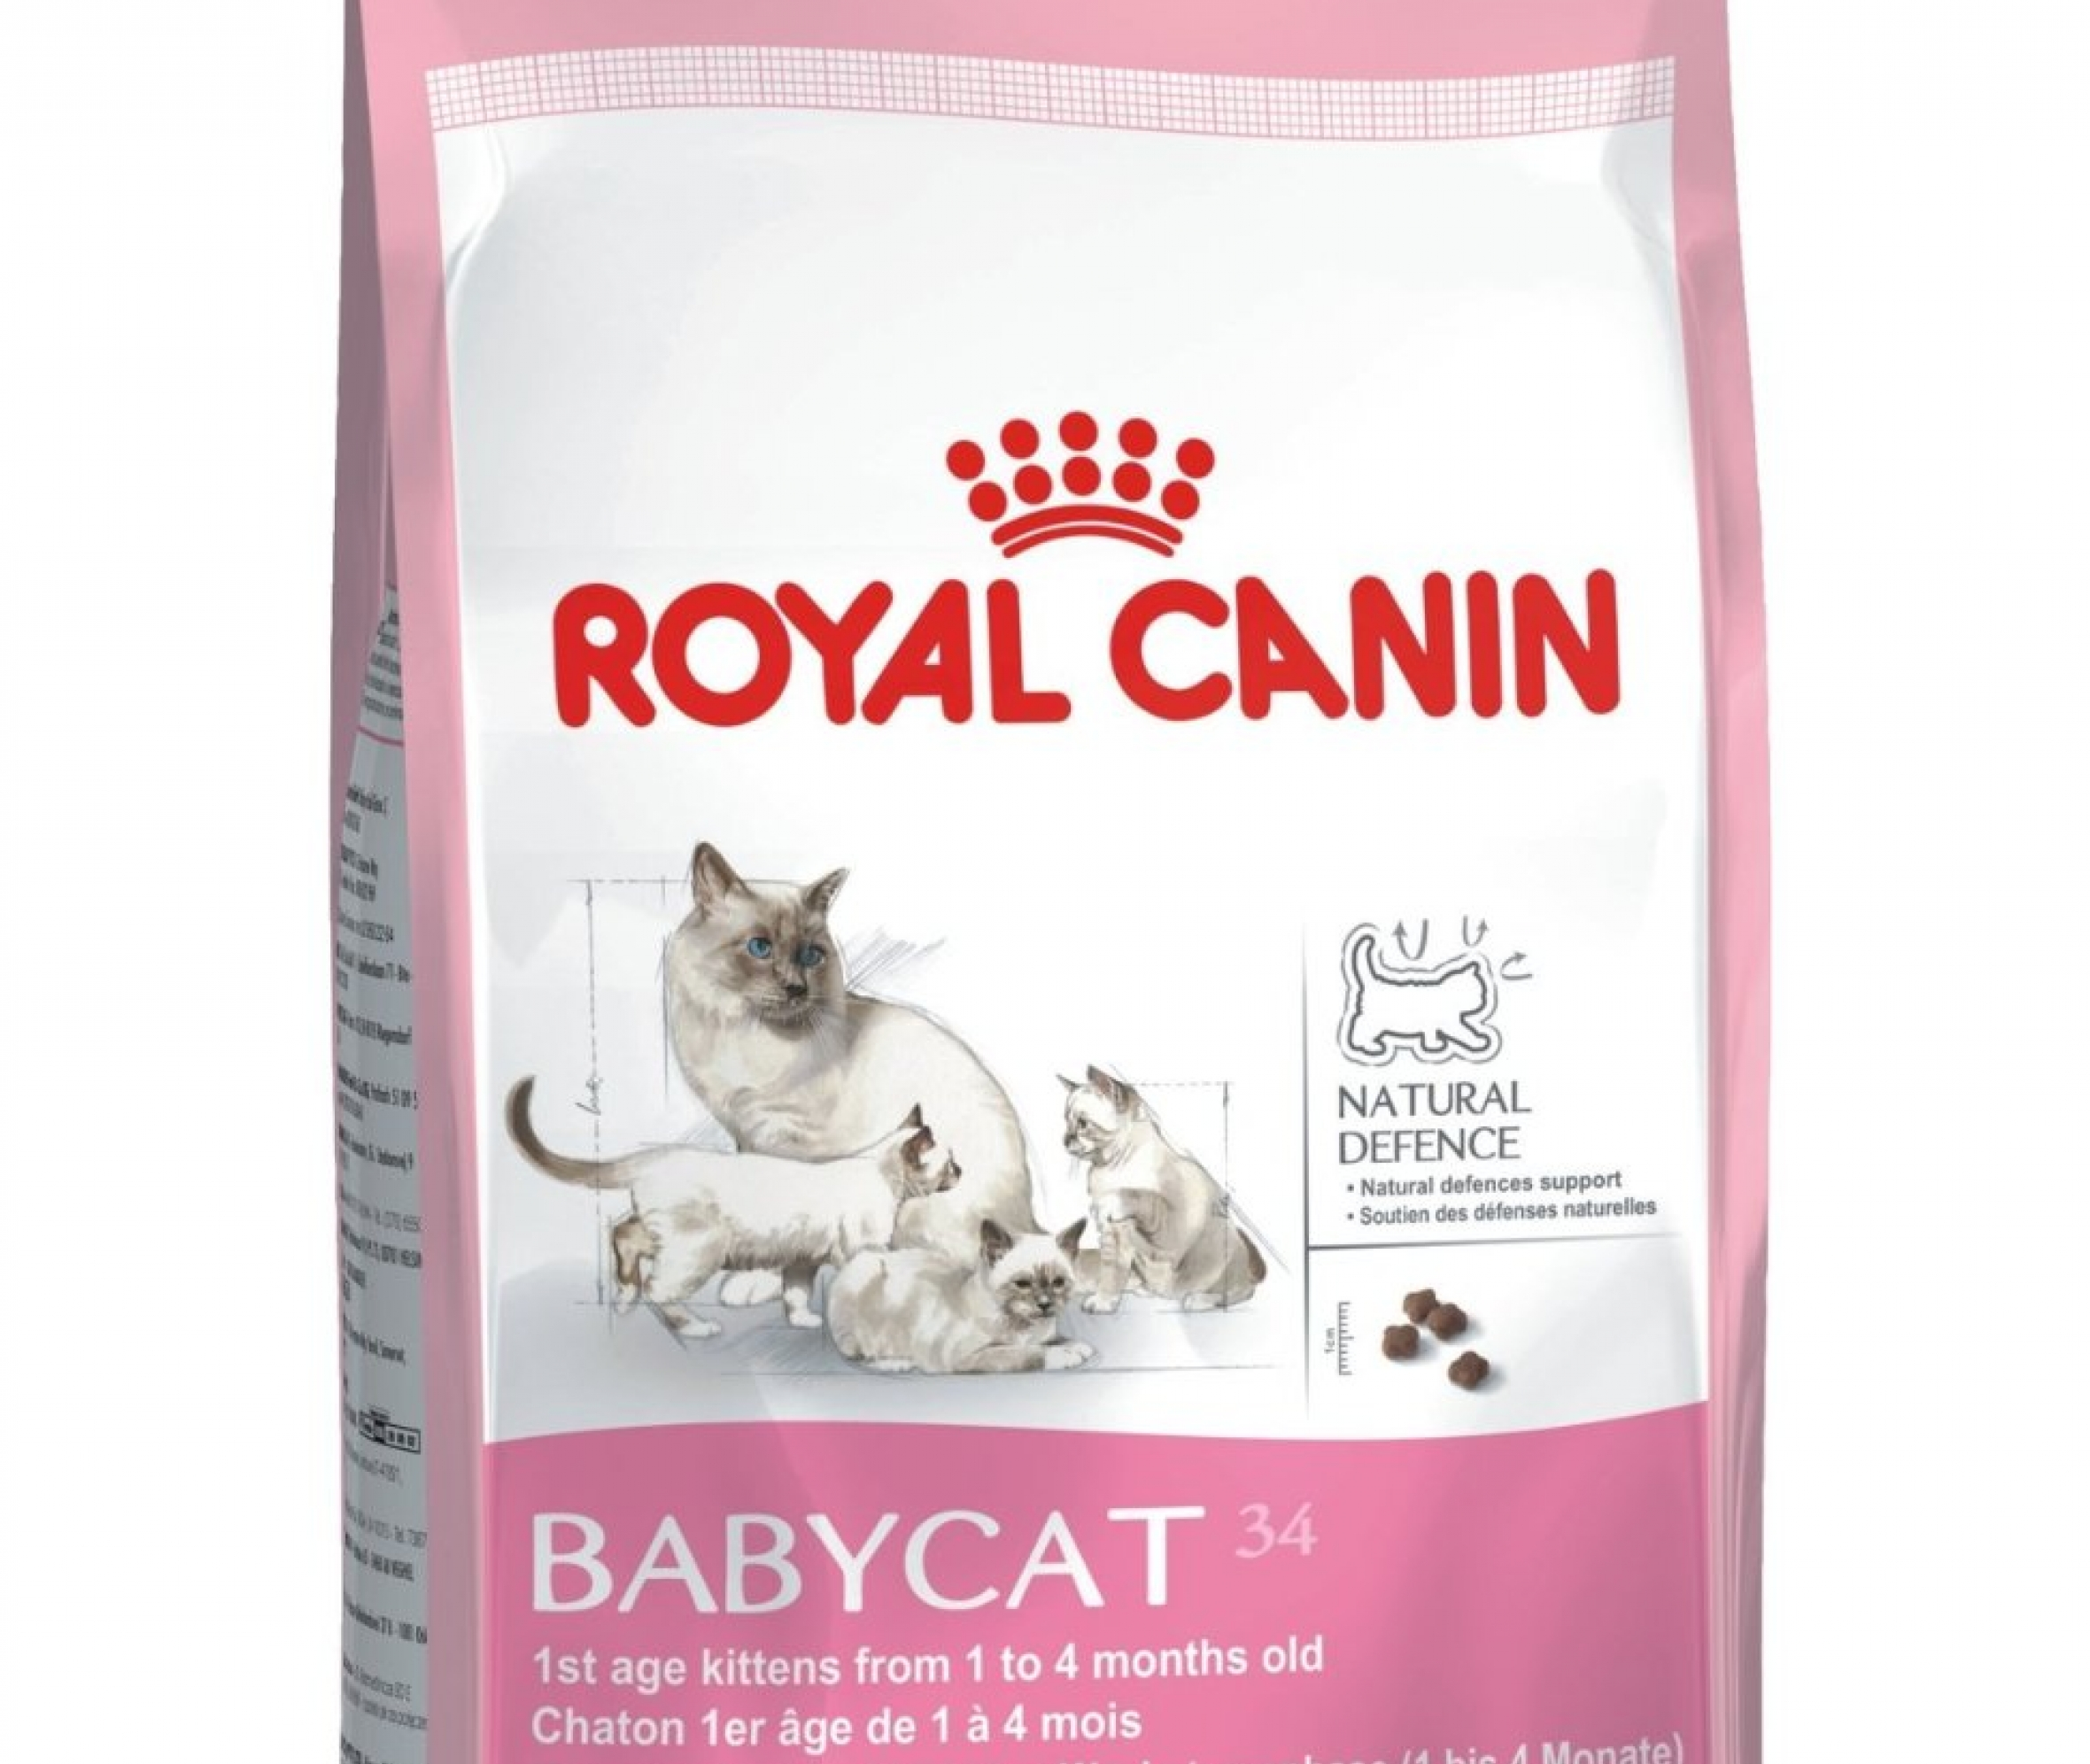 royal-canin-mother-babycat-4.jpg